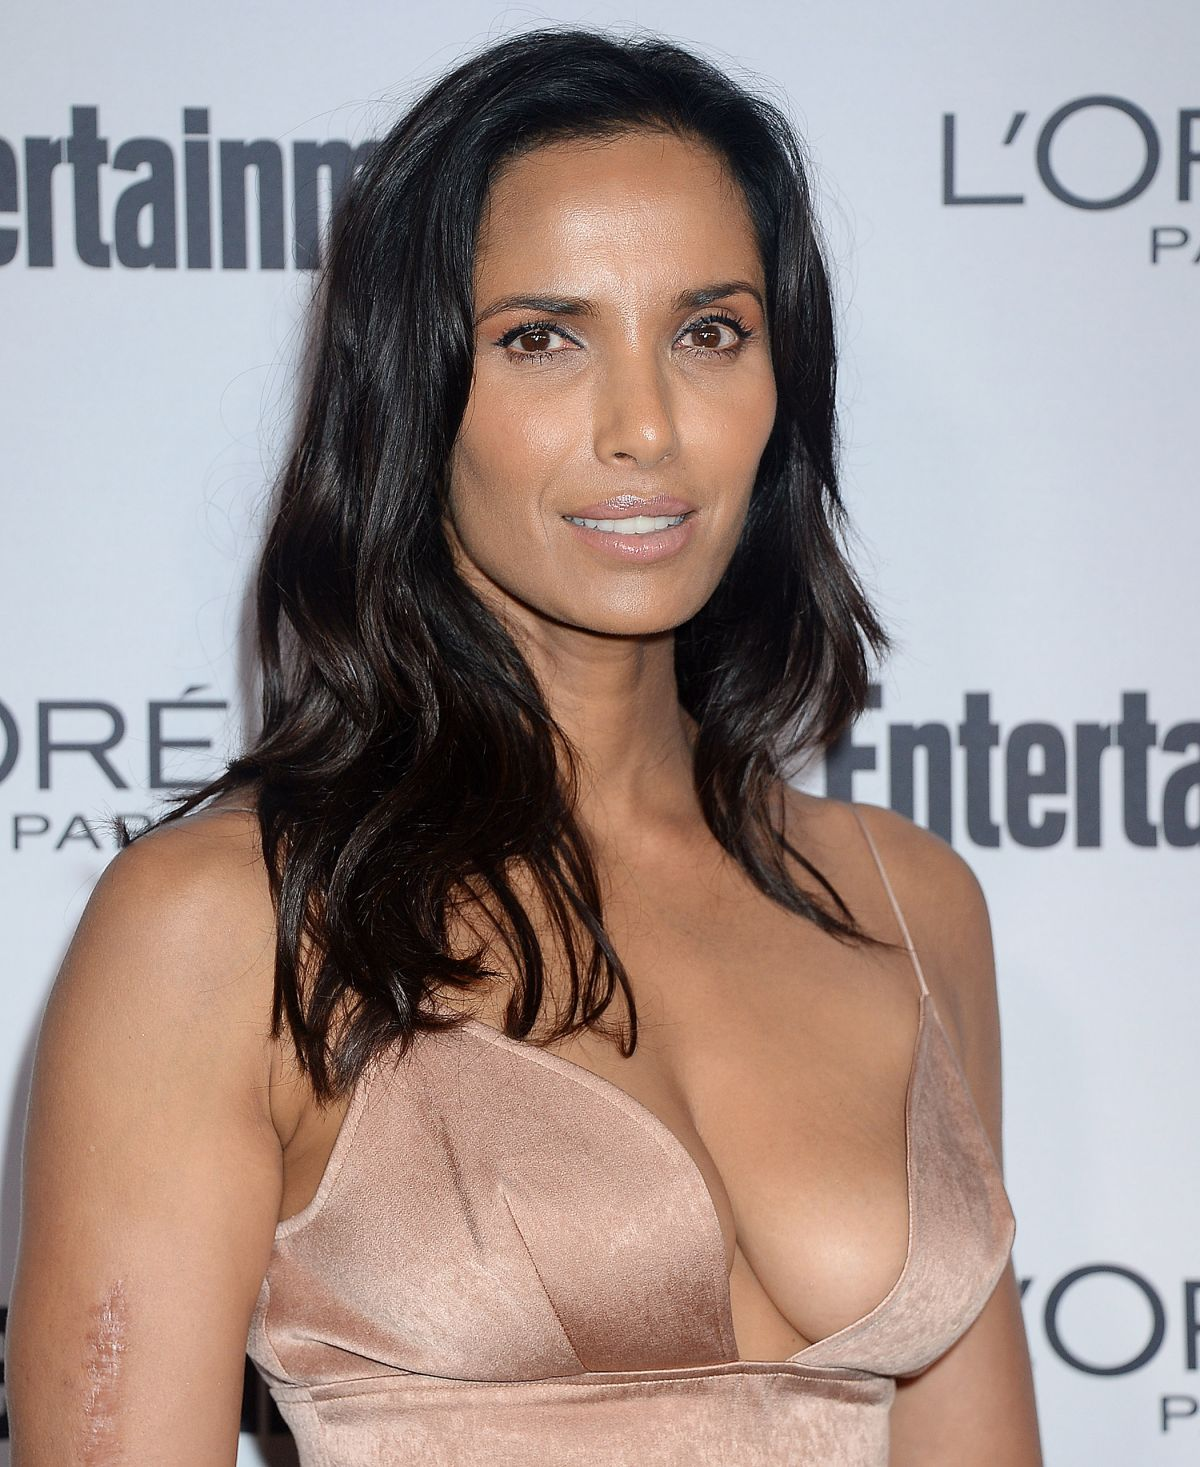 PADMA LAKSHMI at Entertainment Weekly 2016 Pre-emmy Party in Los Angeles 09/16/2016